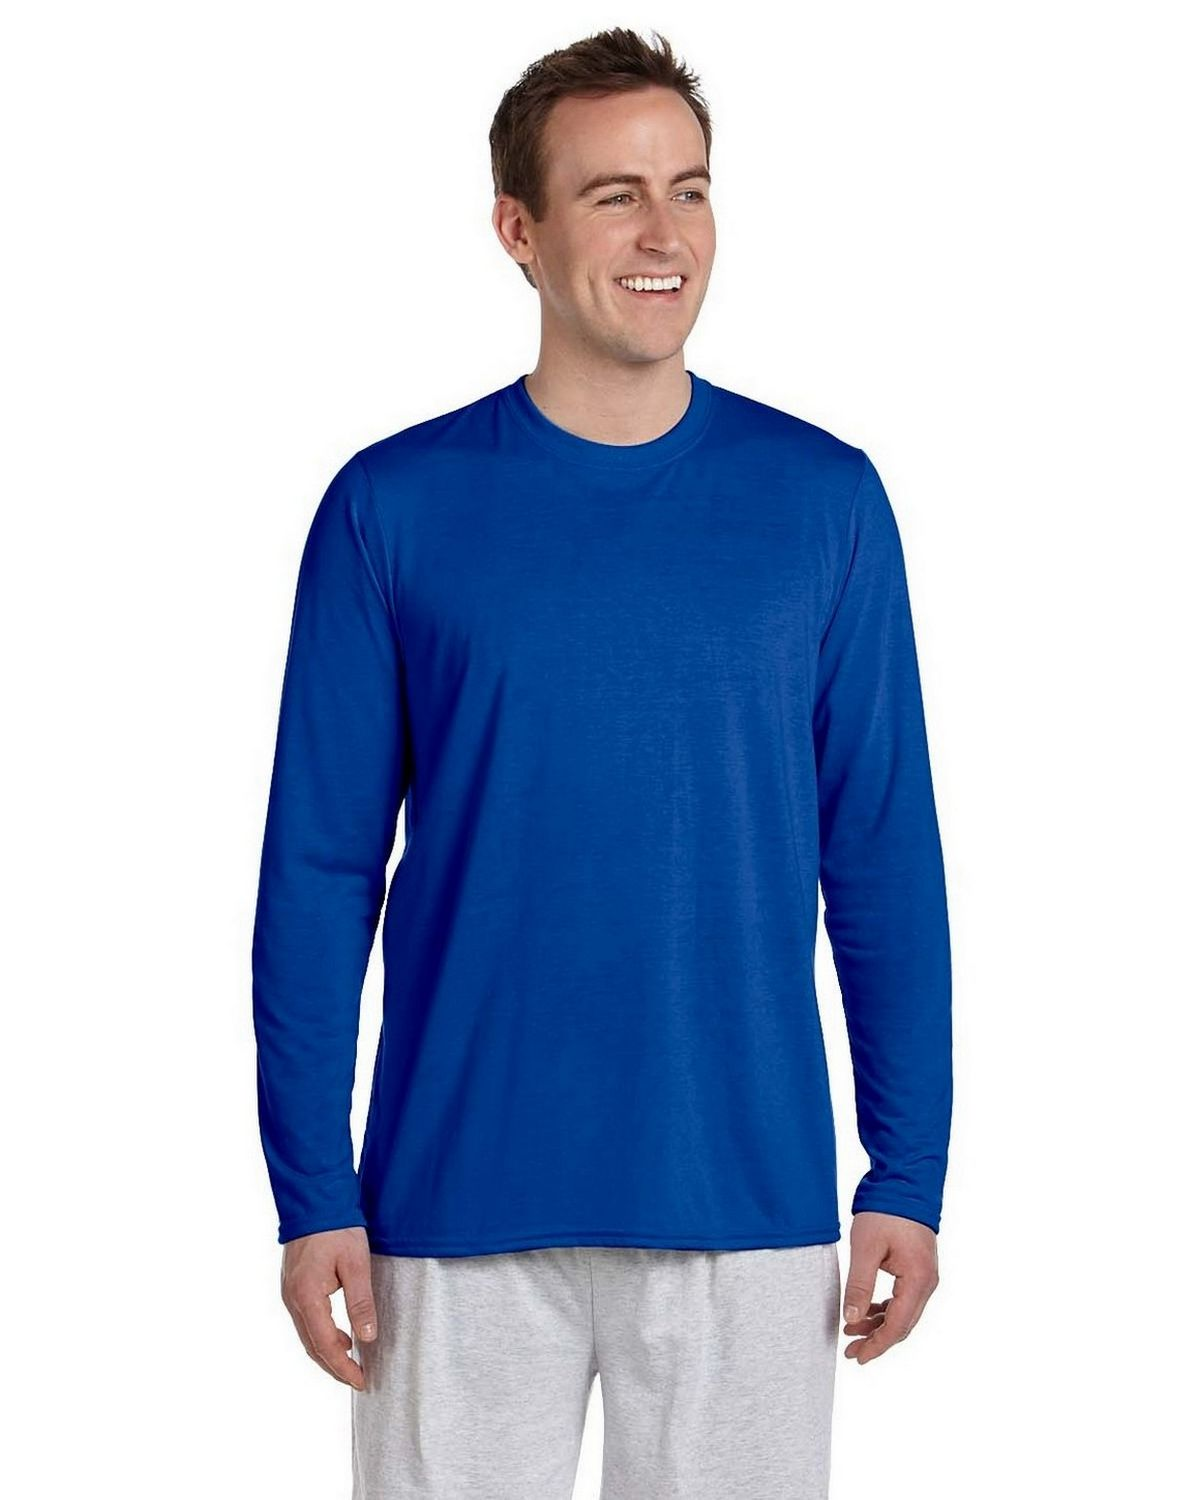 Gildan G424 Performance Long Sleeve T Shirt - Royal - M G424